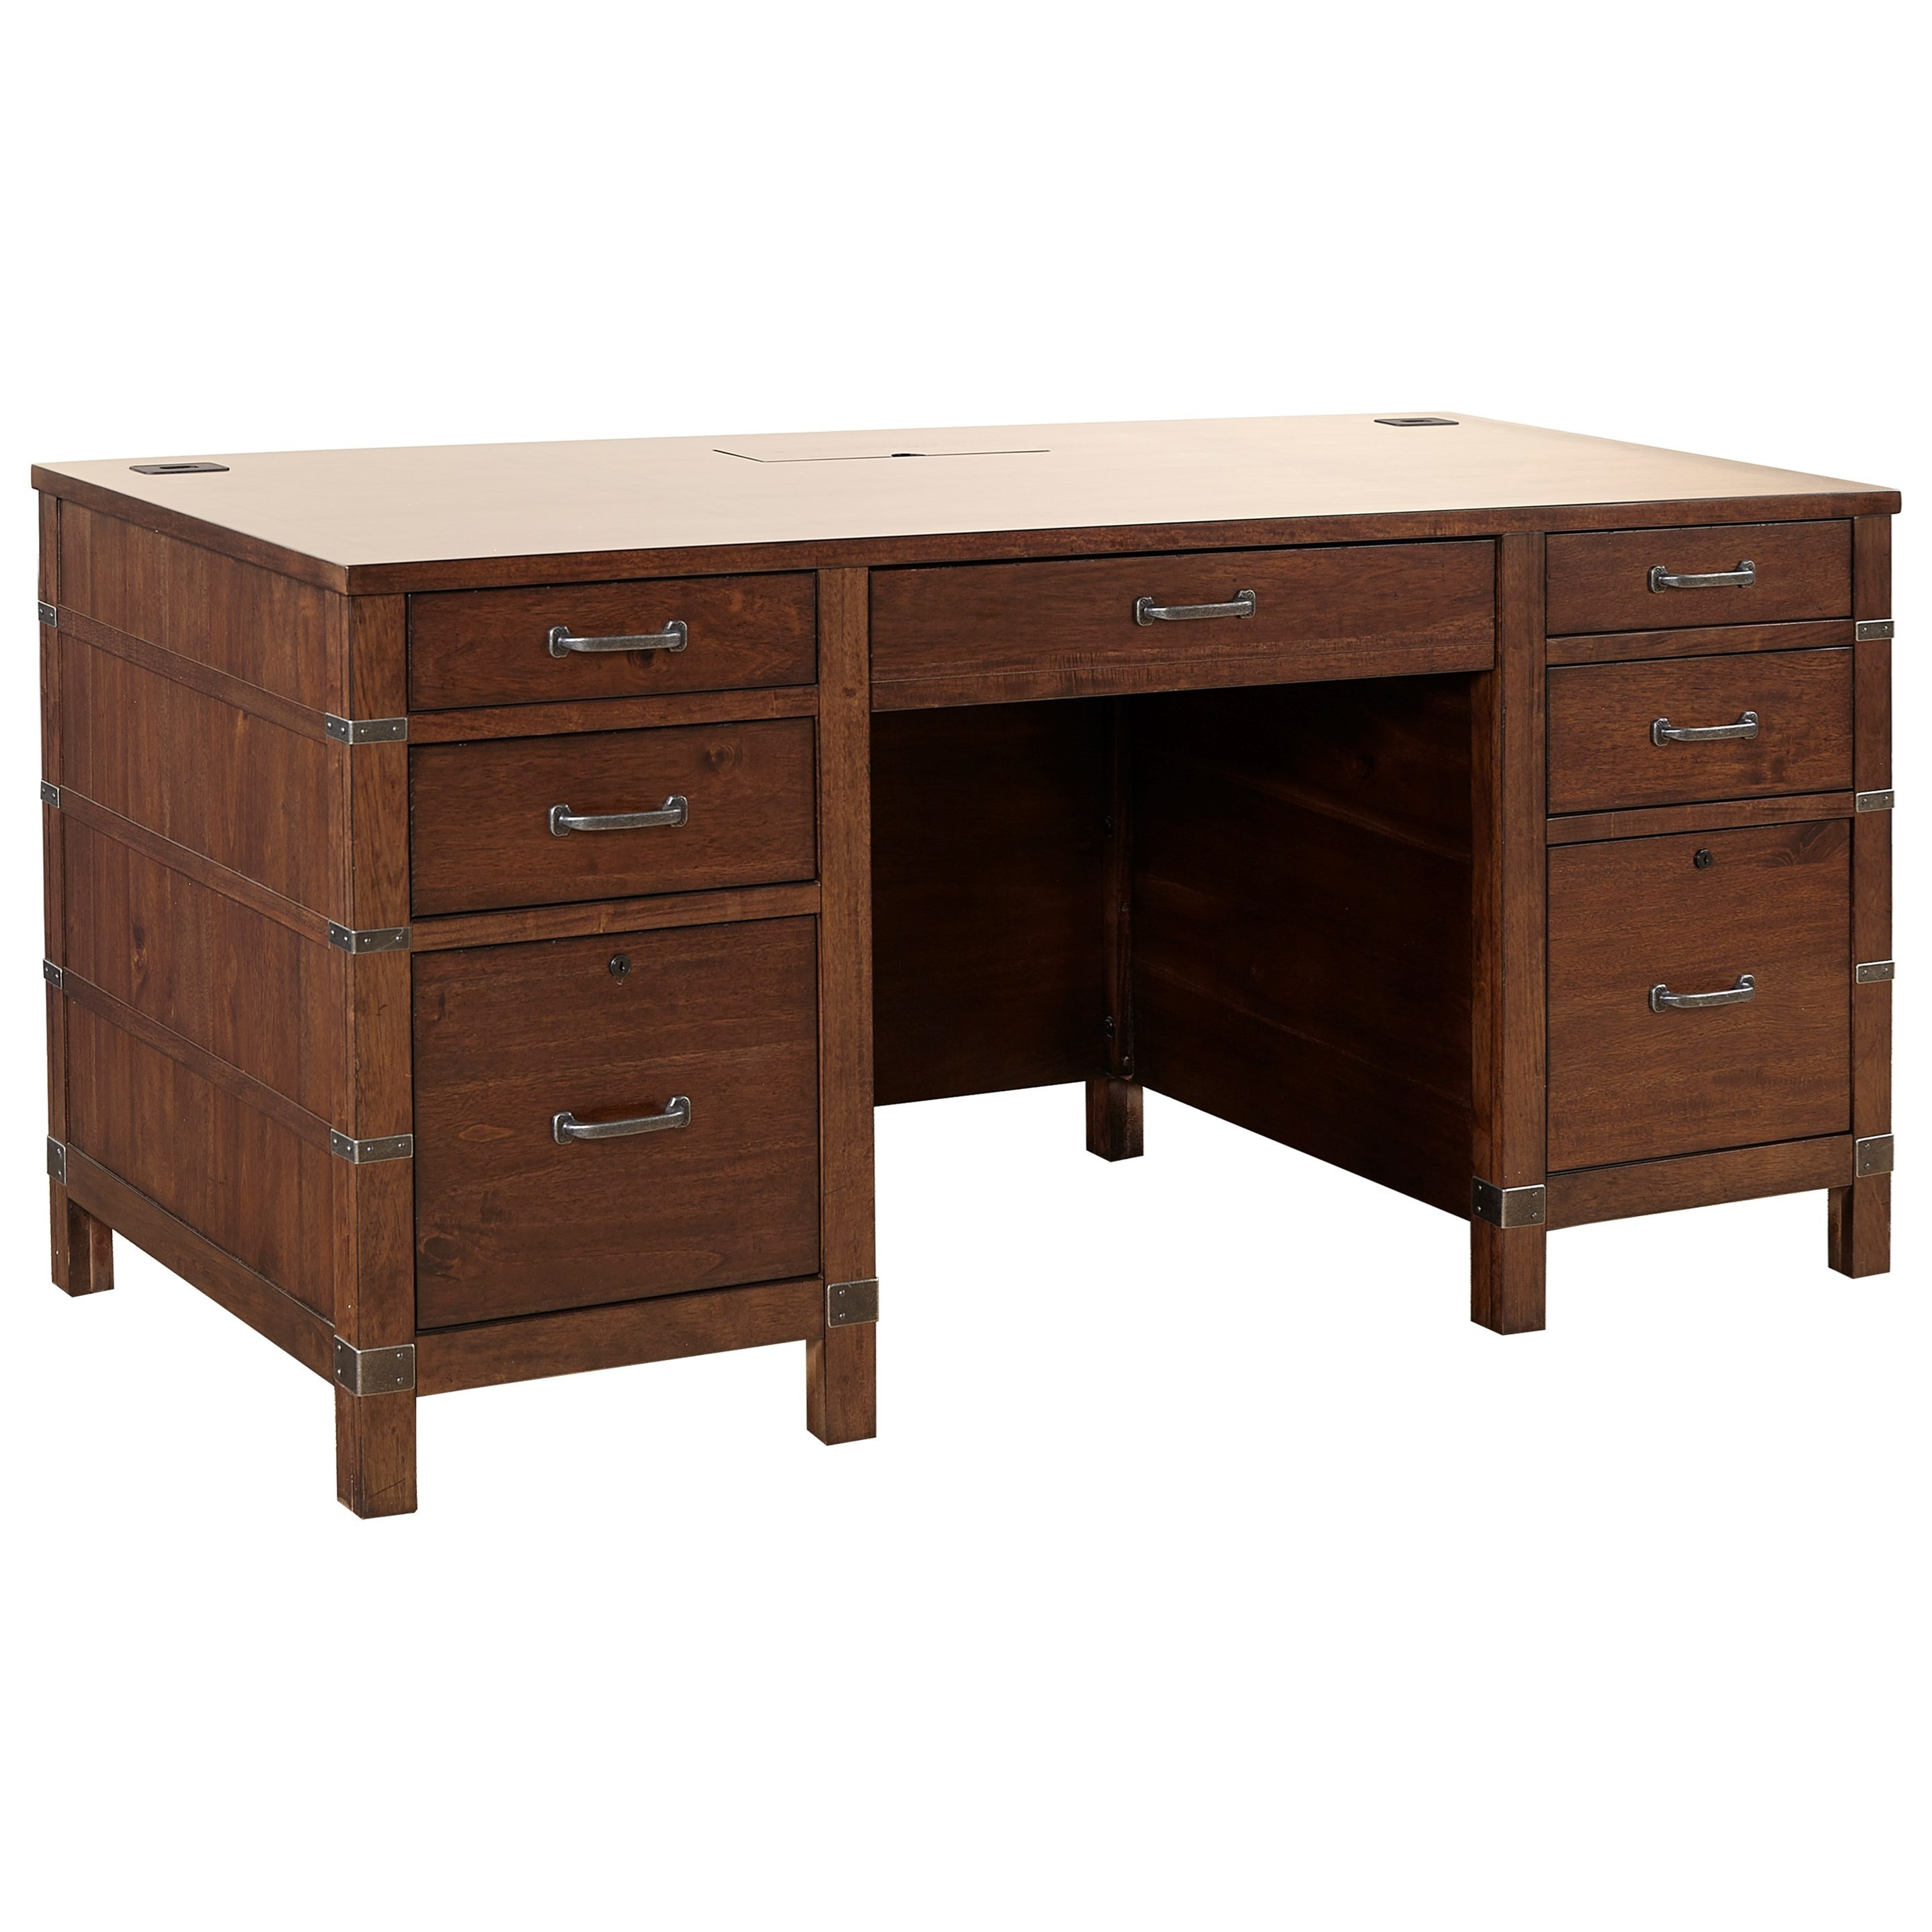 Aspenhome Canfield Icf 303 66 Exec Desk With Ac Outlets